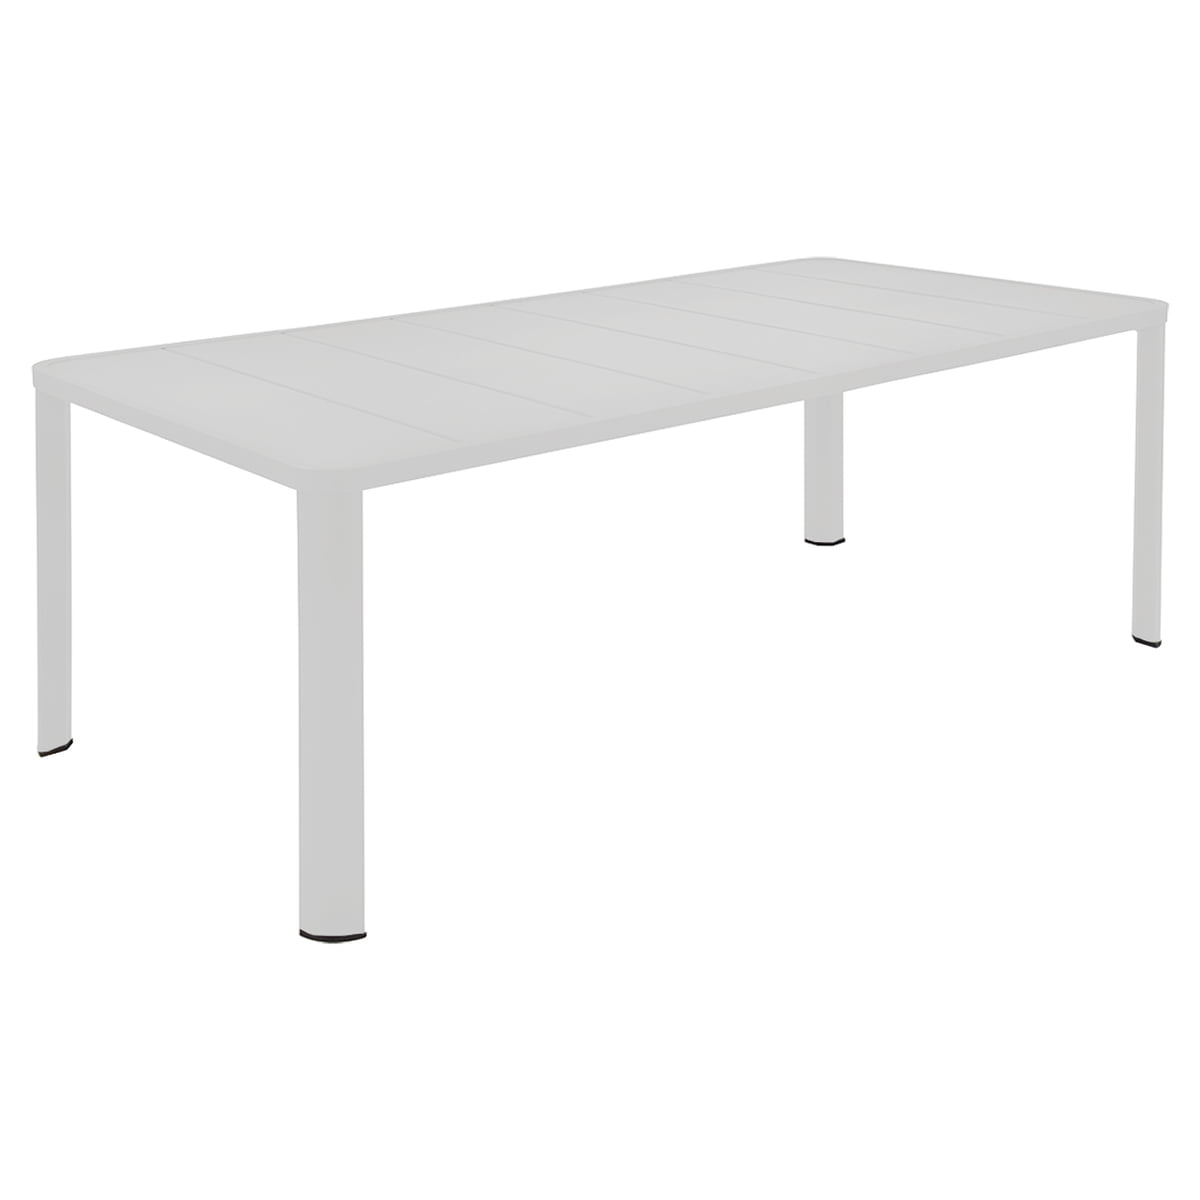 ol ron garden table by fermob connox. Black Bedroom Furniture Sets. Home Design Ideas